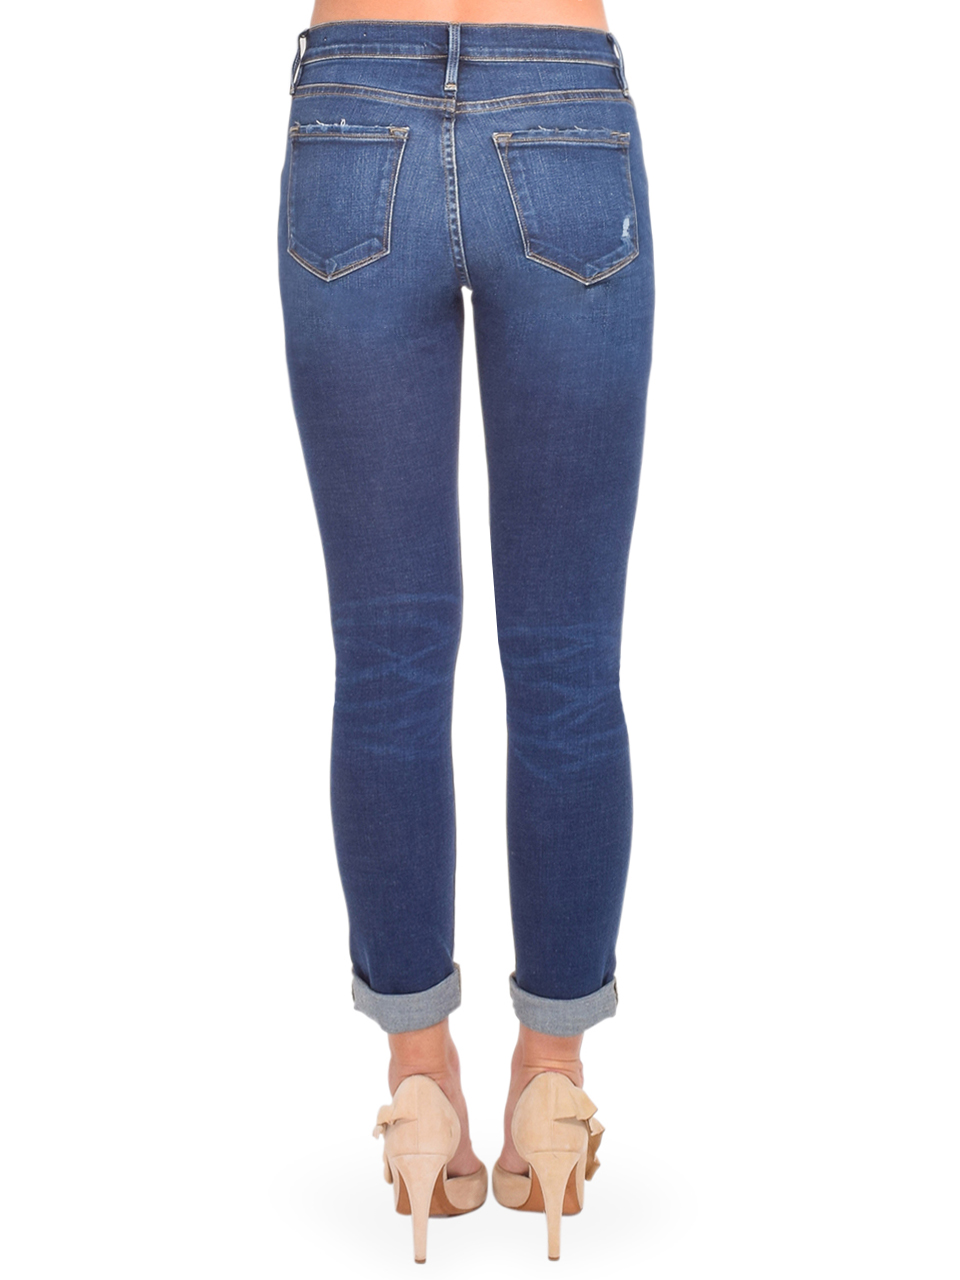 FRAME Le Garcon Straight Leg Jean in Caribou Back View